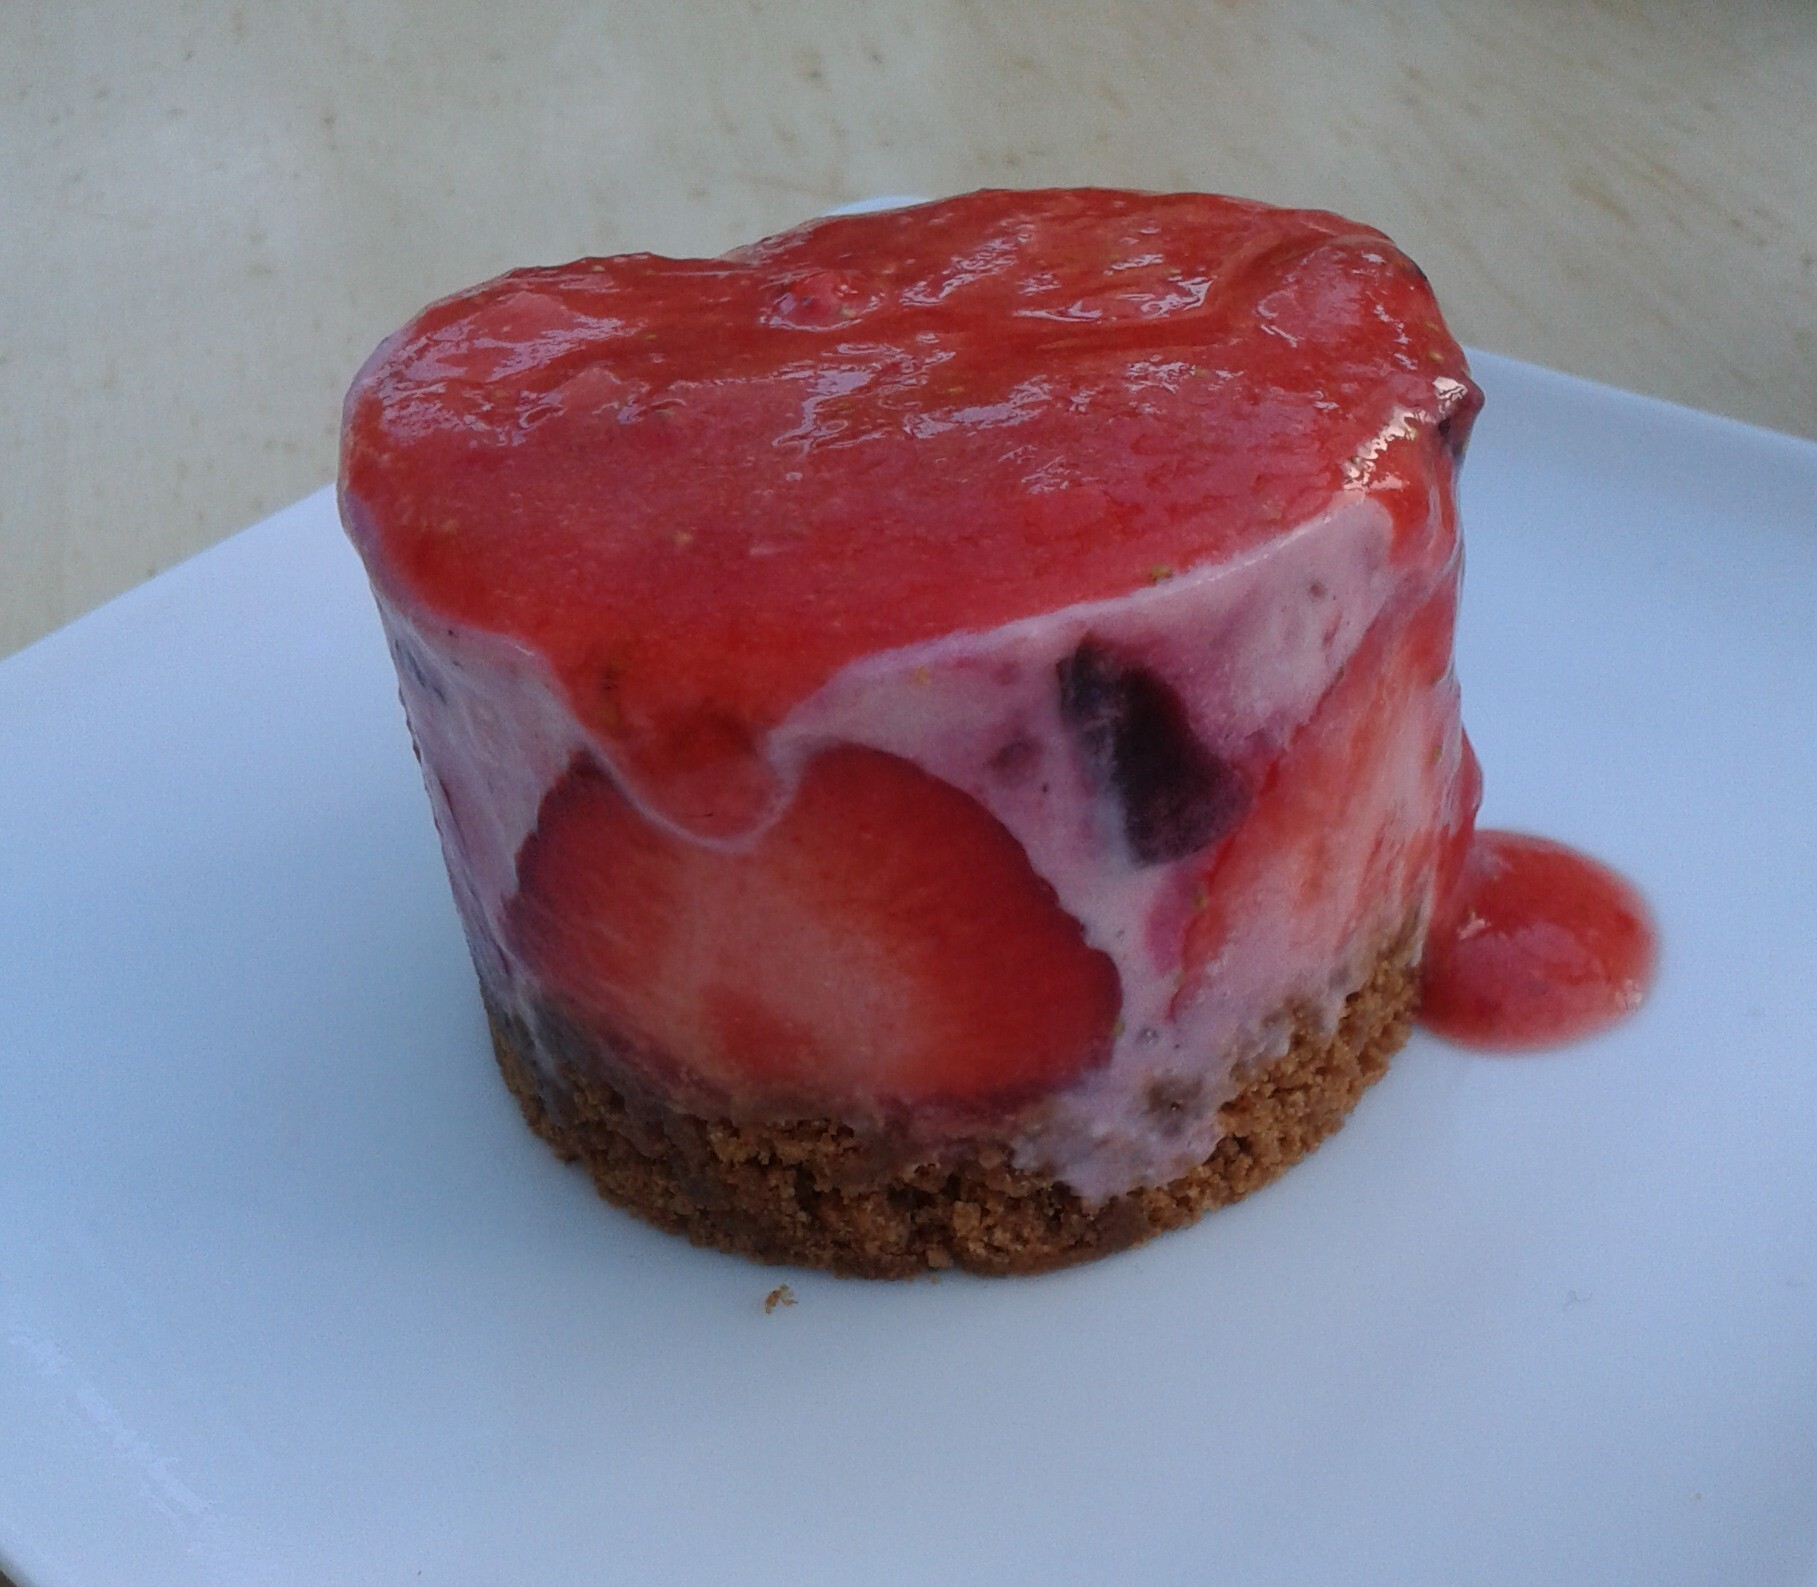 #44 – Frozen cheesecake dessert